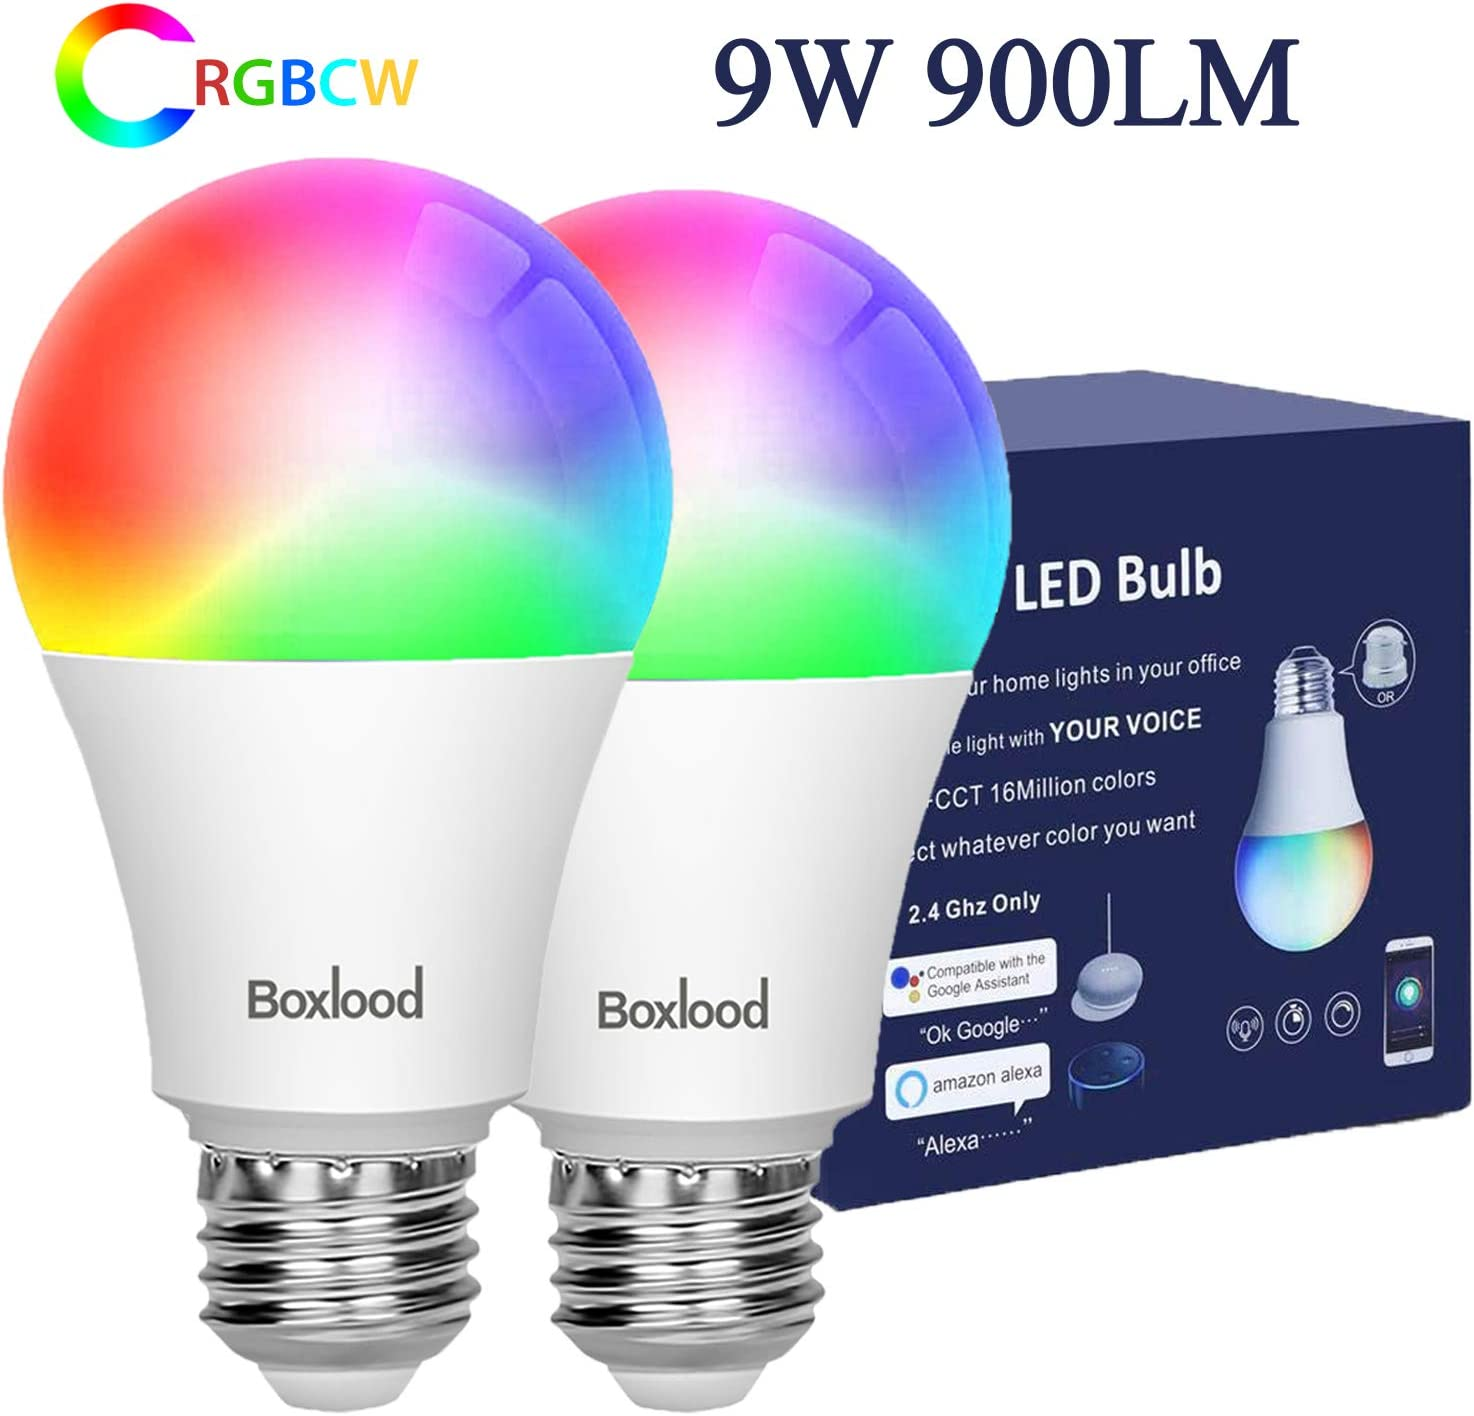 Smart WiFi Light Bulb,Compatible with Alexa,Google Home,No Hub Required,2.4GHz Only,9W 900lm (80W Equivalent),A19 E26 Base,RGBCW Color Changing,Warm White to Cool White Dimmable, 2Pack by Boxlood